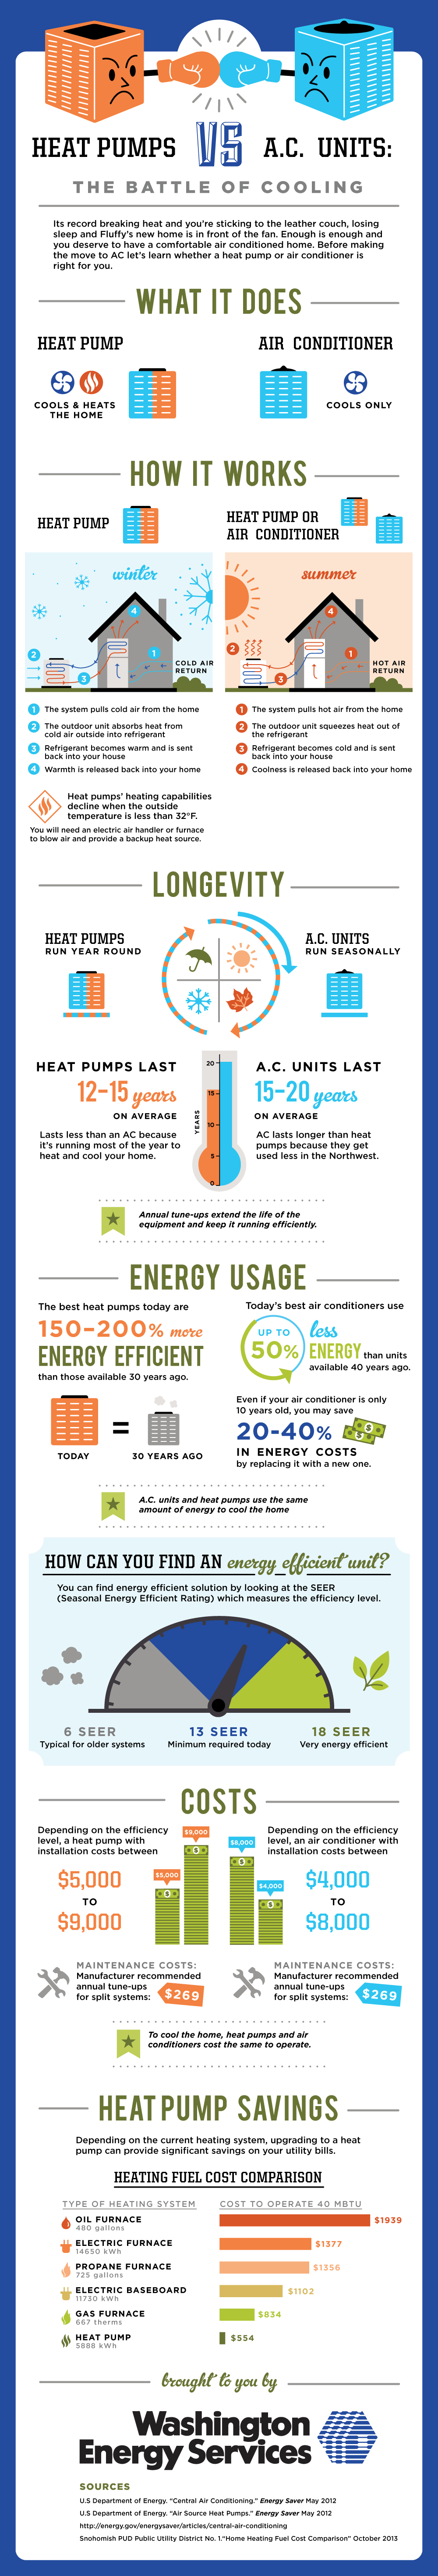 heat pumps vs ac infographic washington energy services. Black Bedroom Furniture Sets. Home Design Ideas